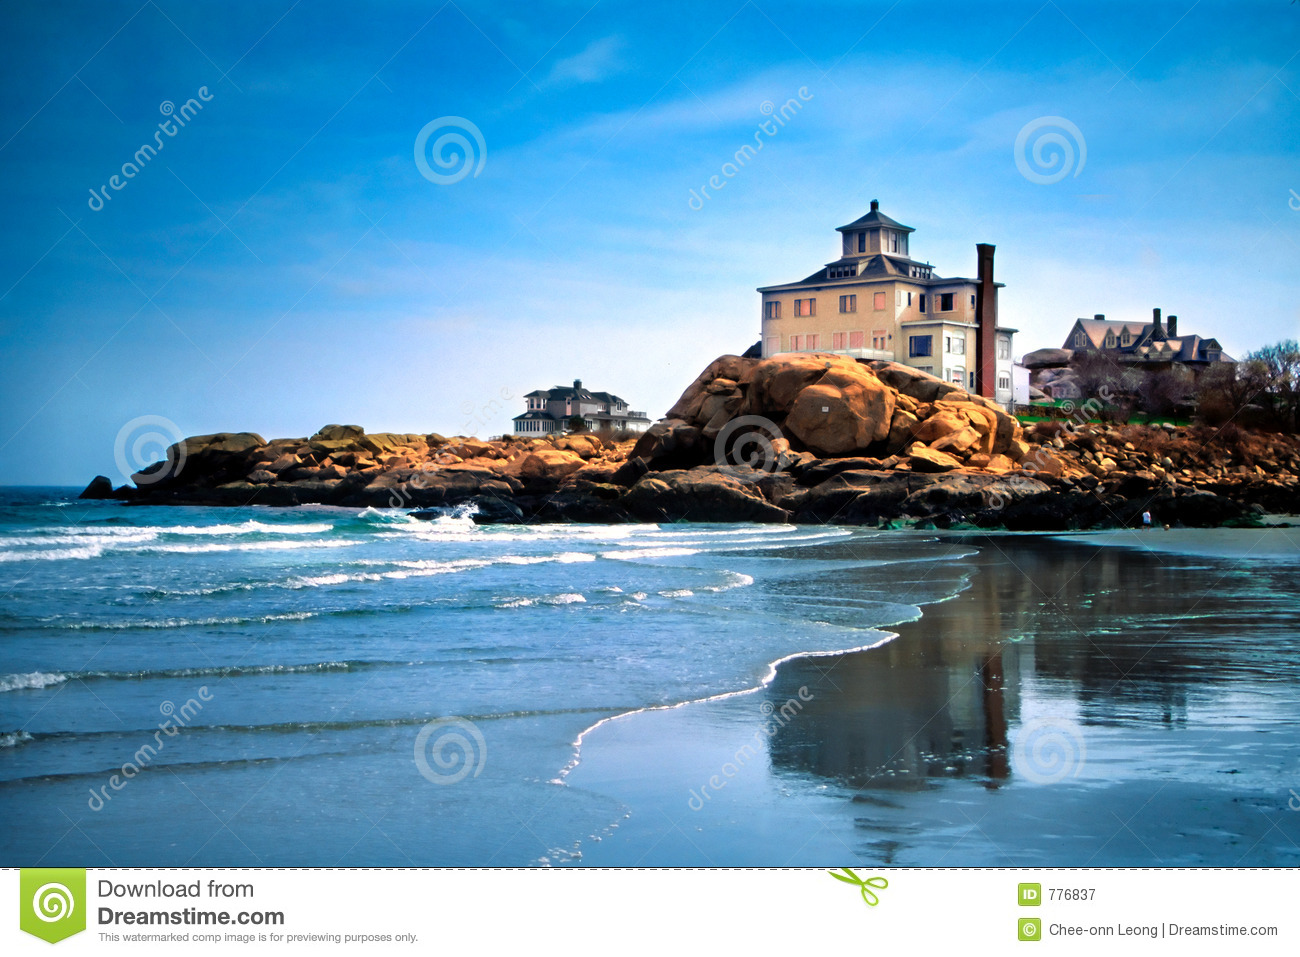 The Beaches of Cape Ann, Massachusetts